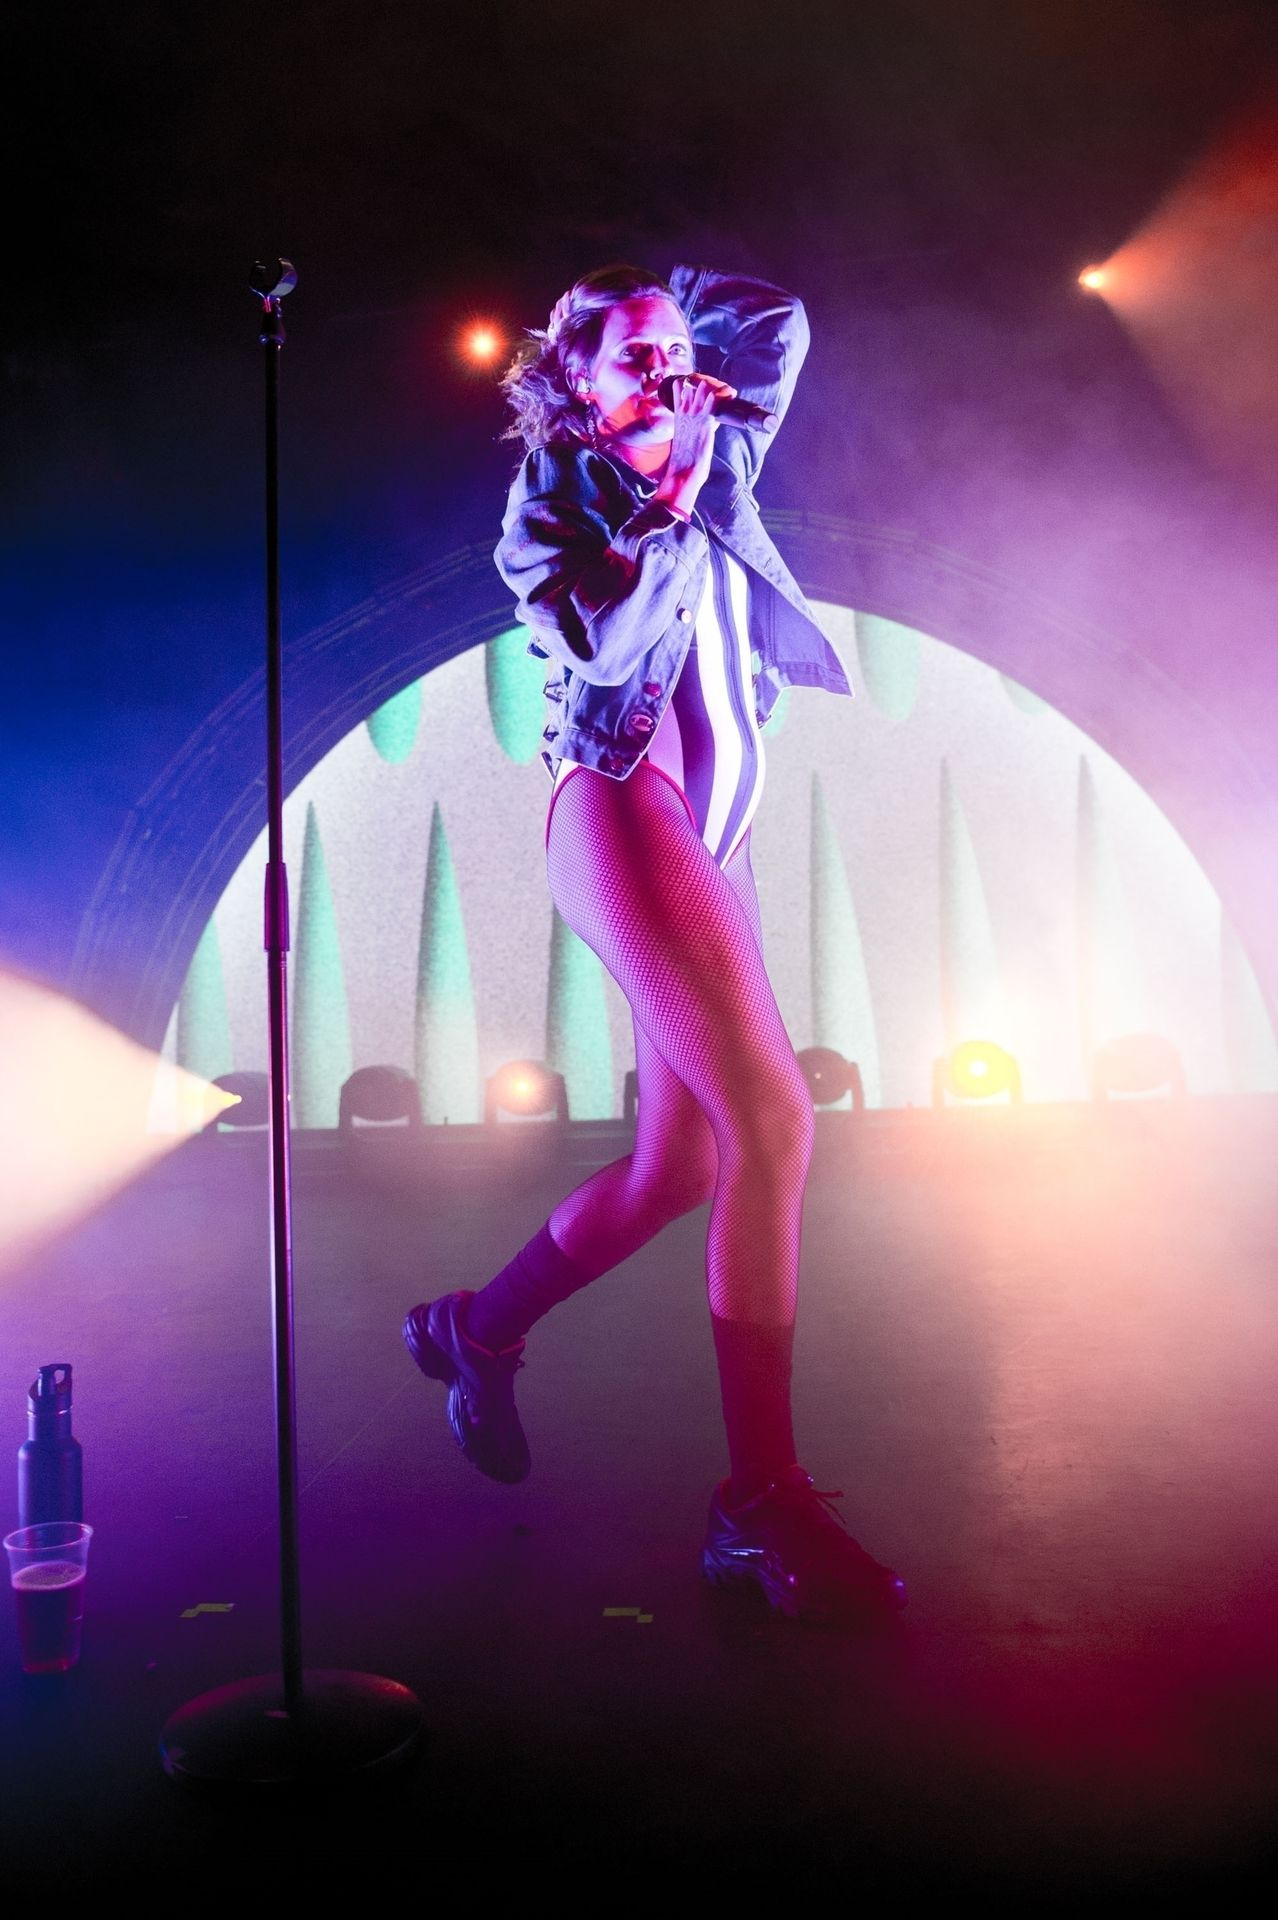 Tove Lo Is In Concert Performing Live At O2 Forum Kentish Town In London 0056